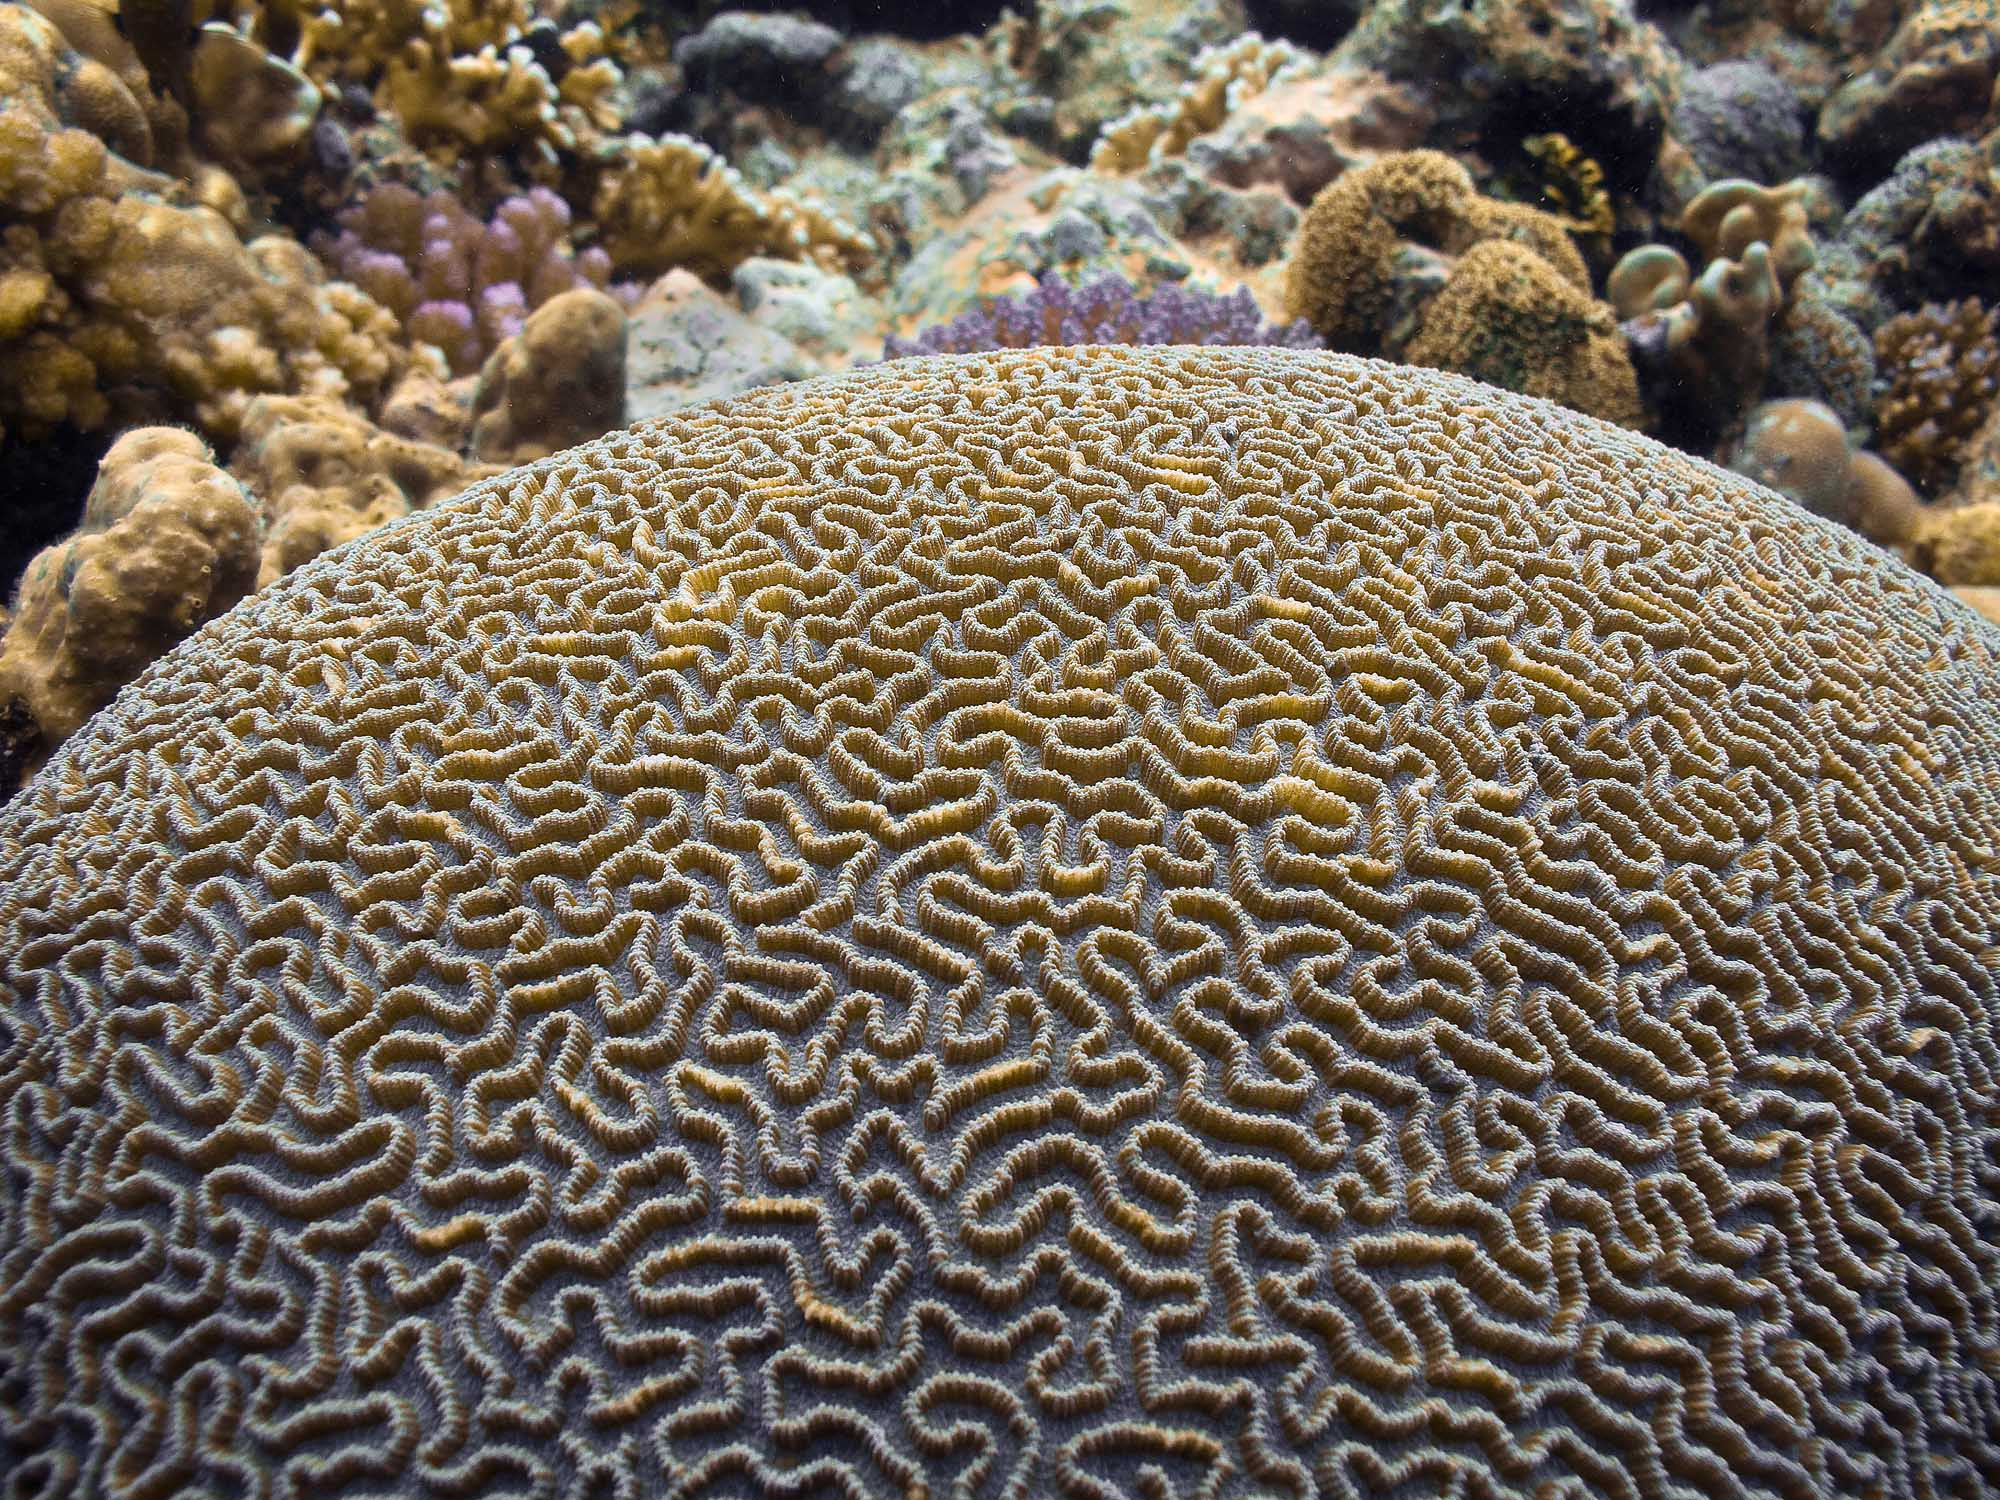 brain coral drawing - photo #28